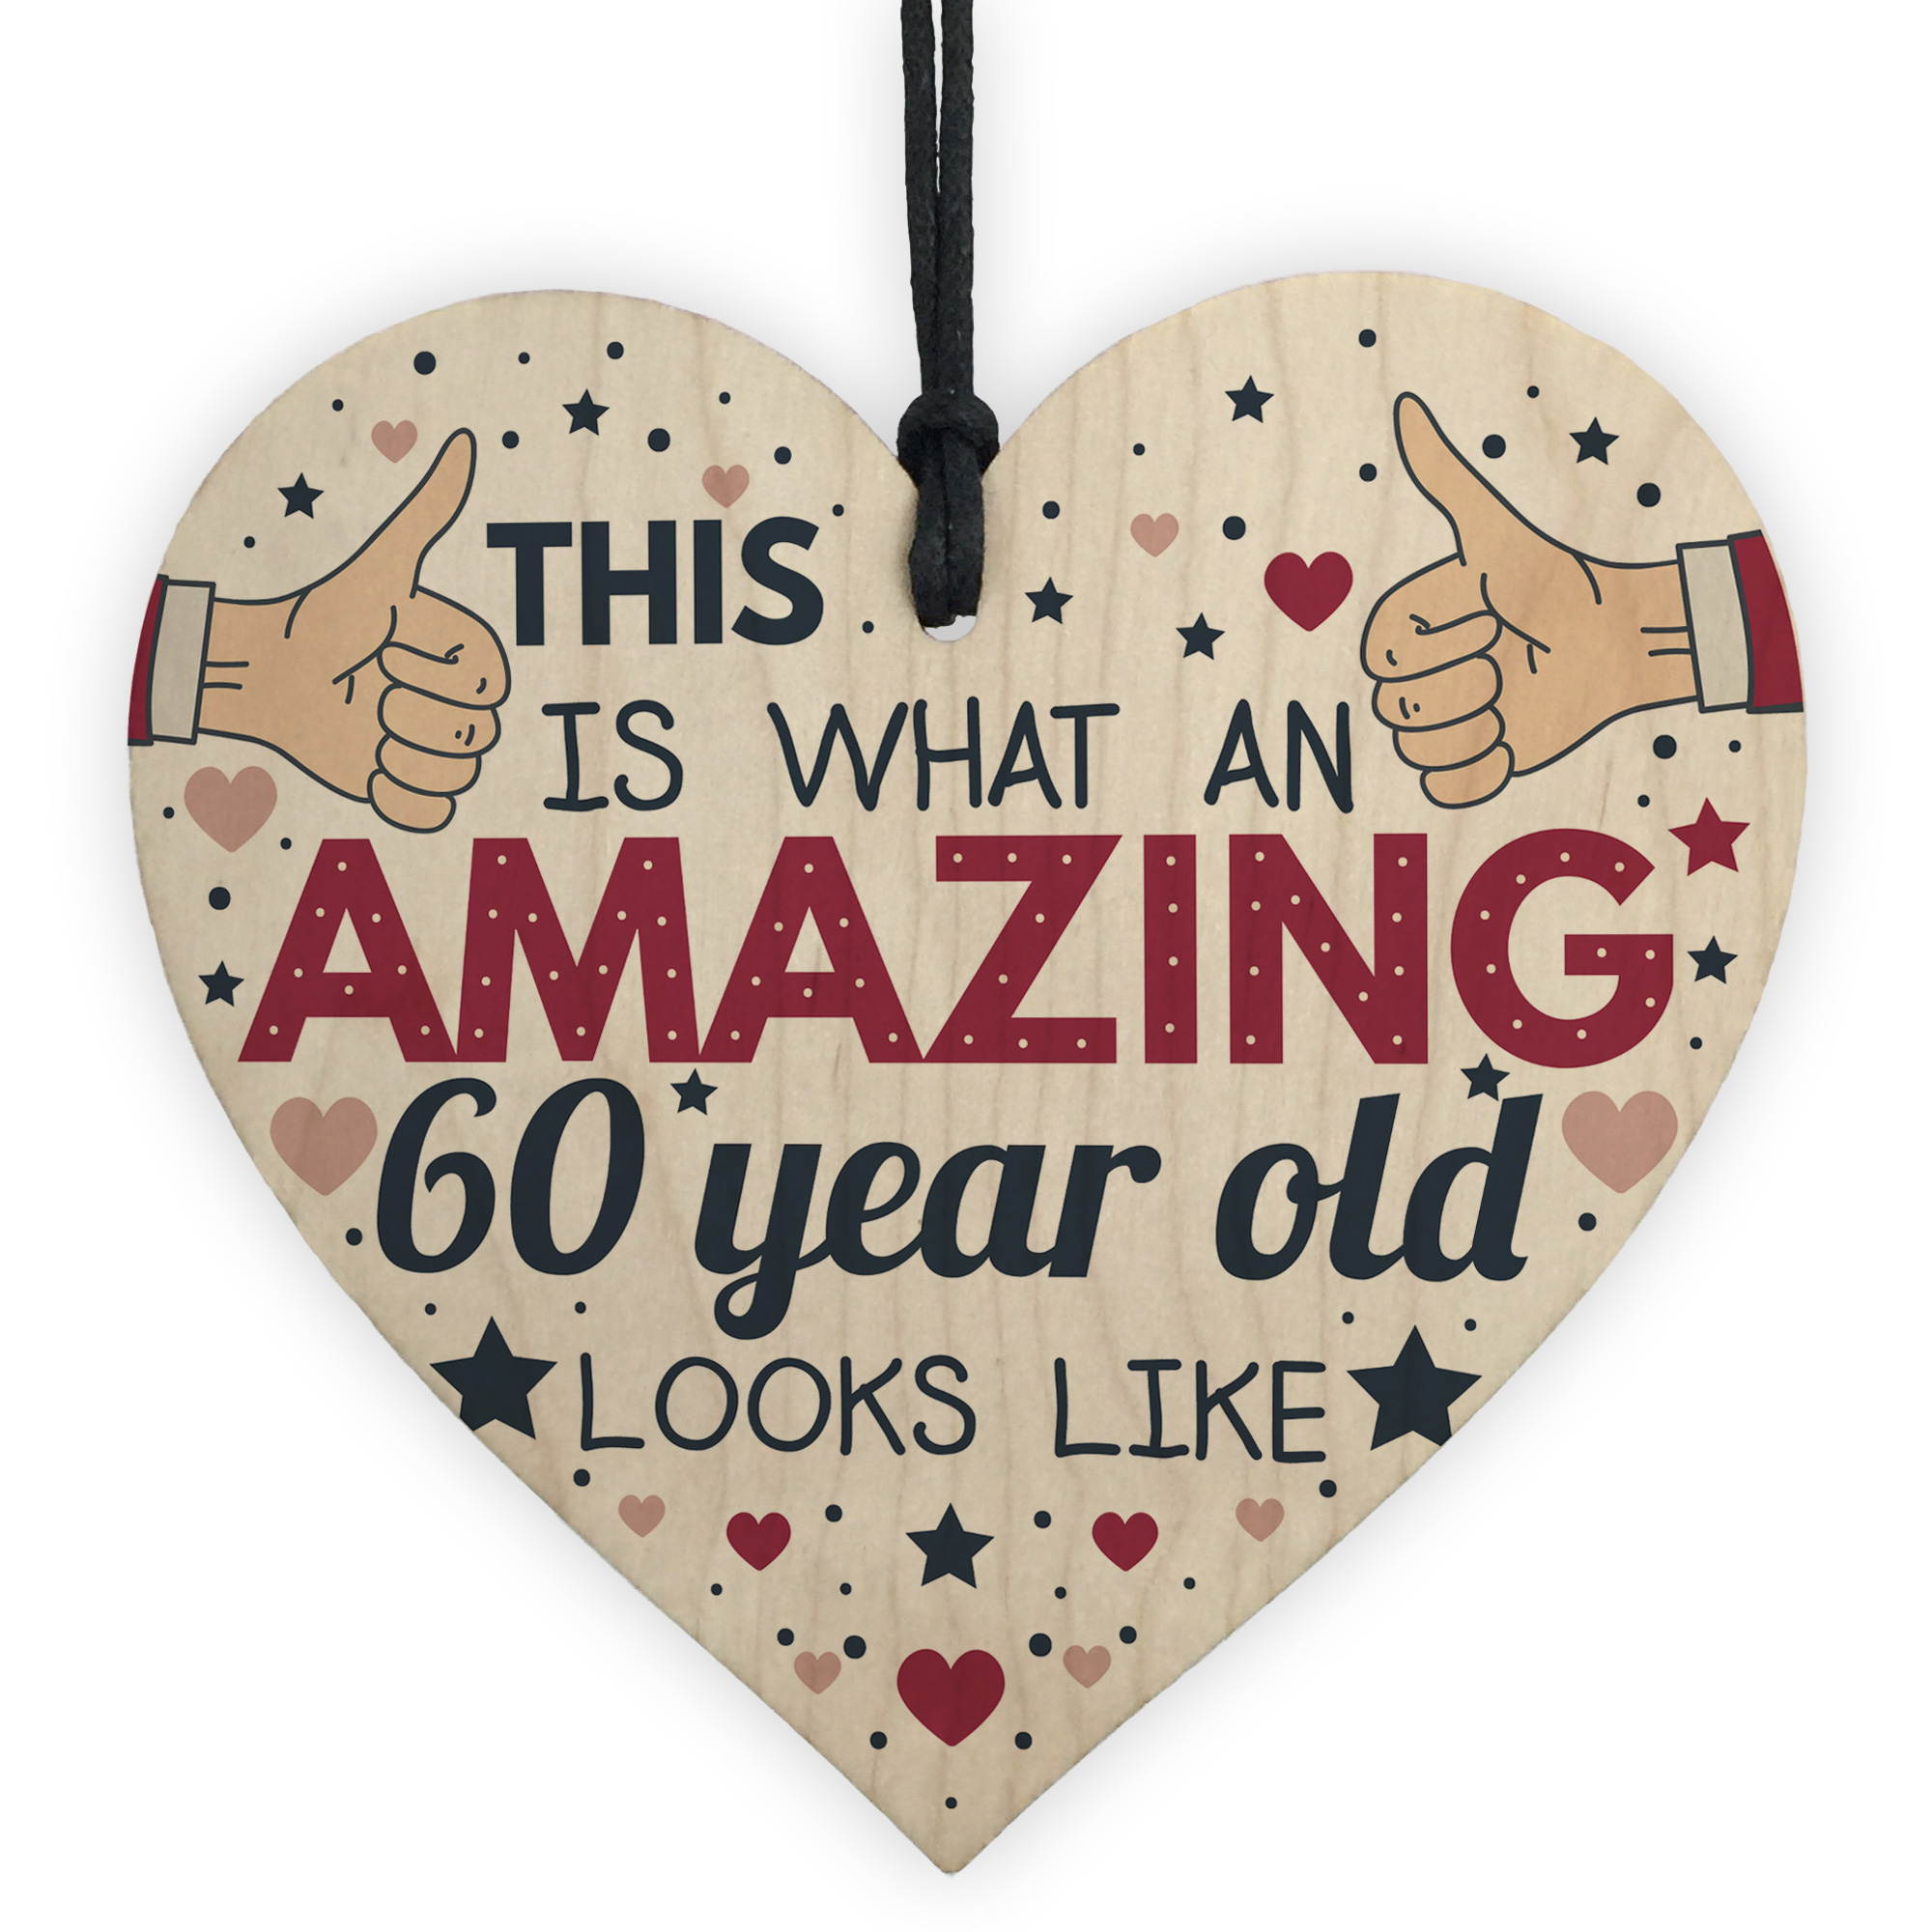 Details About AWESOME 60 Year Old Funny 60th Birthday Gift Card Wood Keepsakes